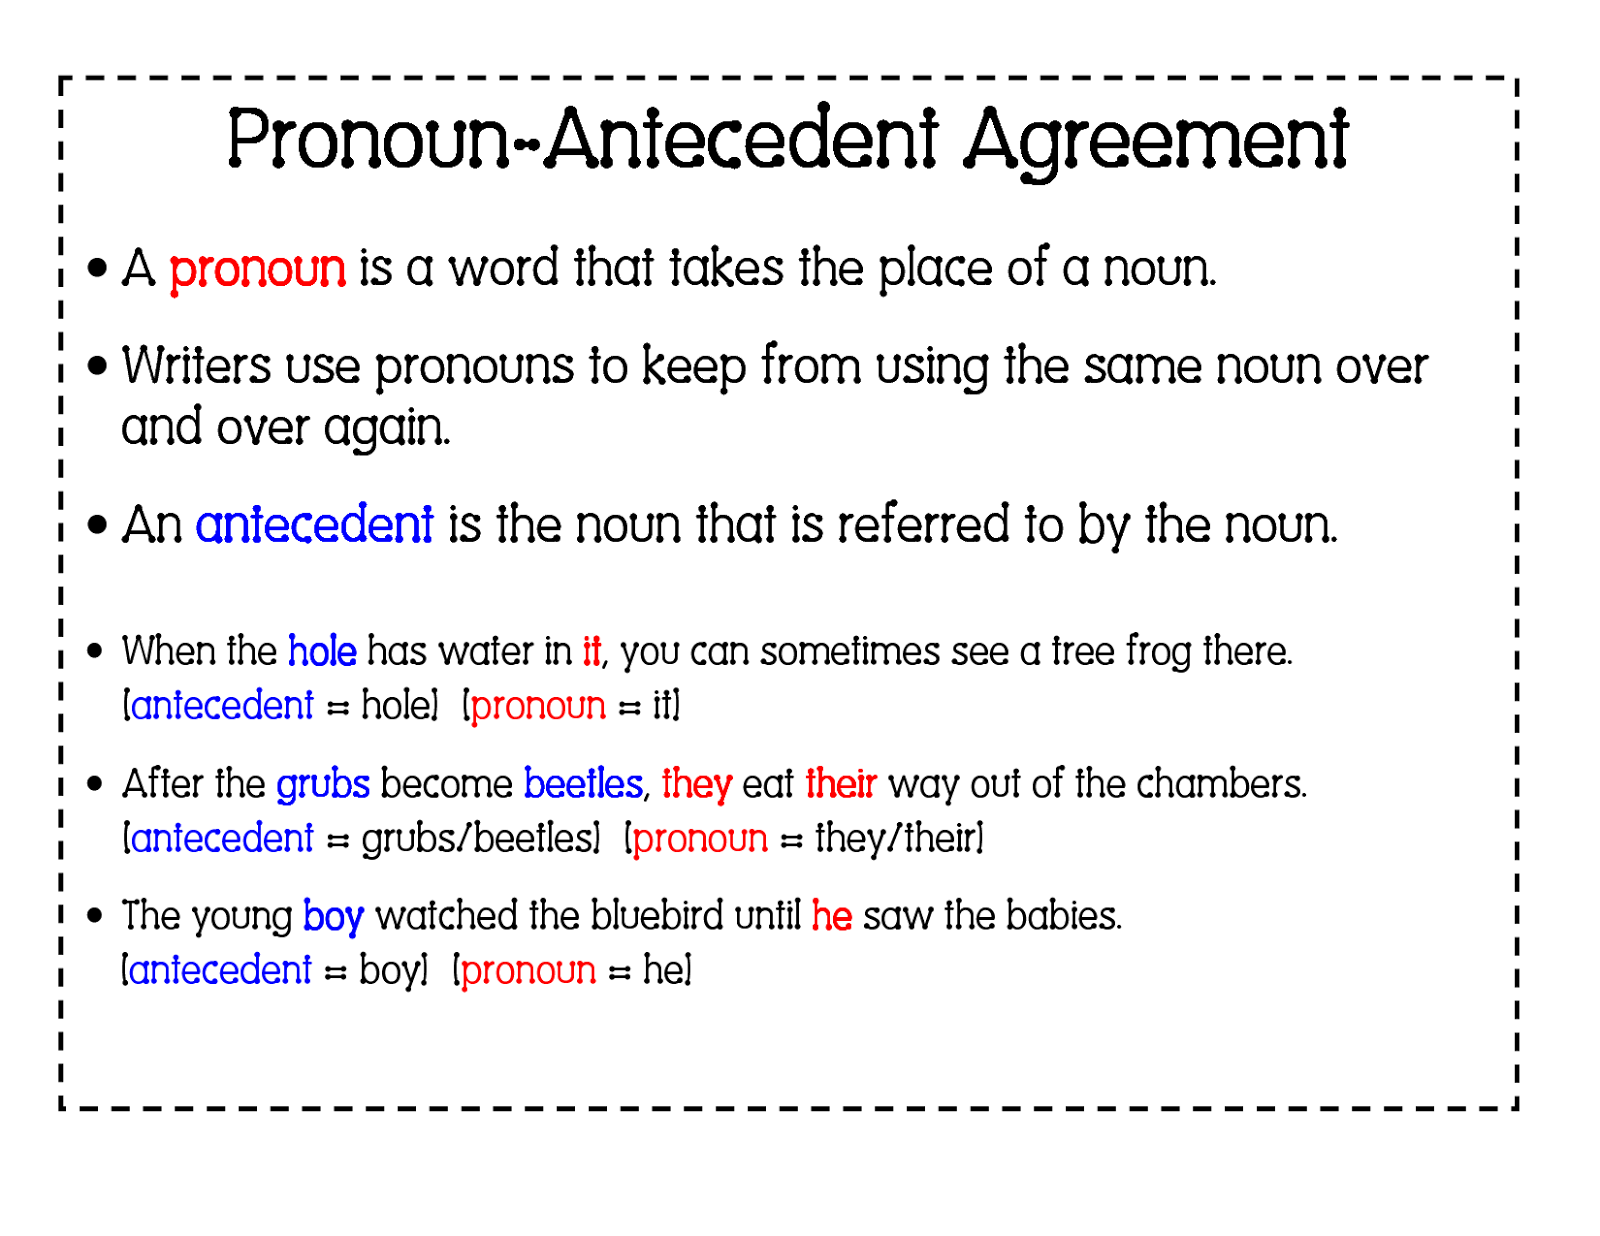 worksheet Pronoun And Antecedent Worksheet 6th grade english with mr t pronoun antecedent agreement part 2 2